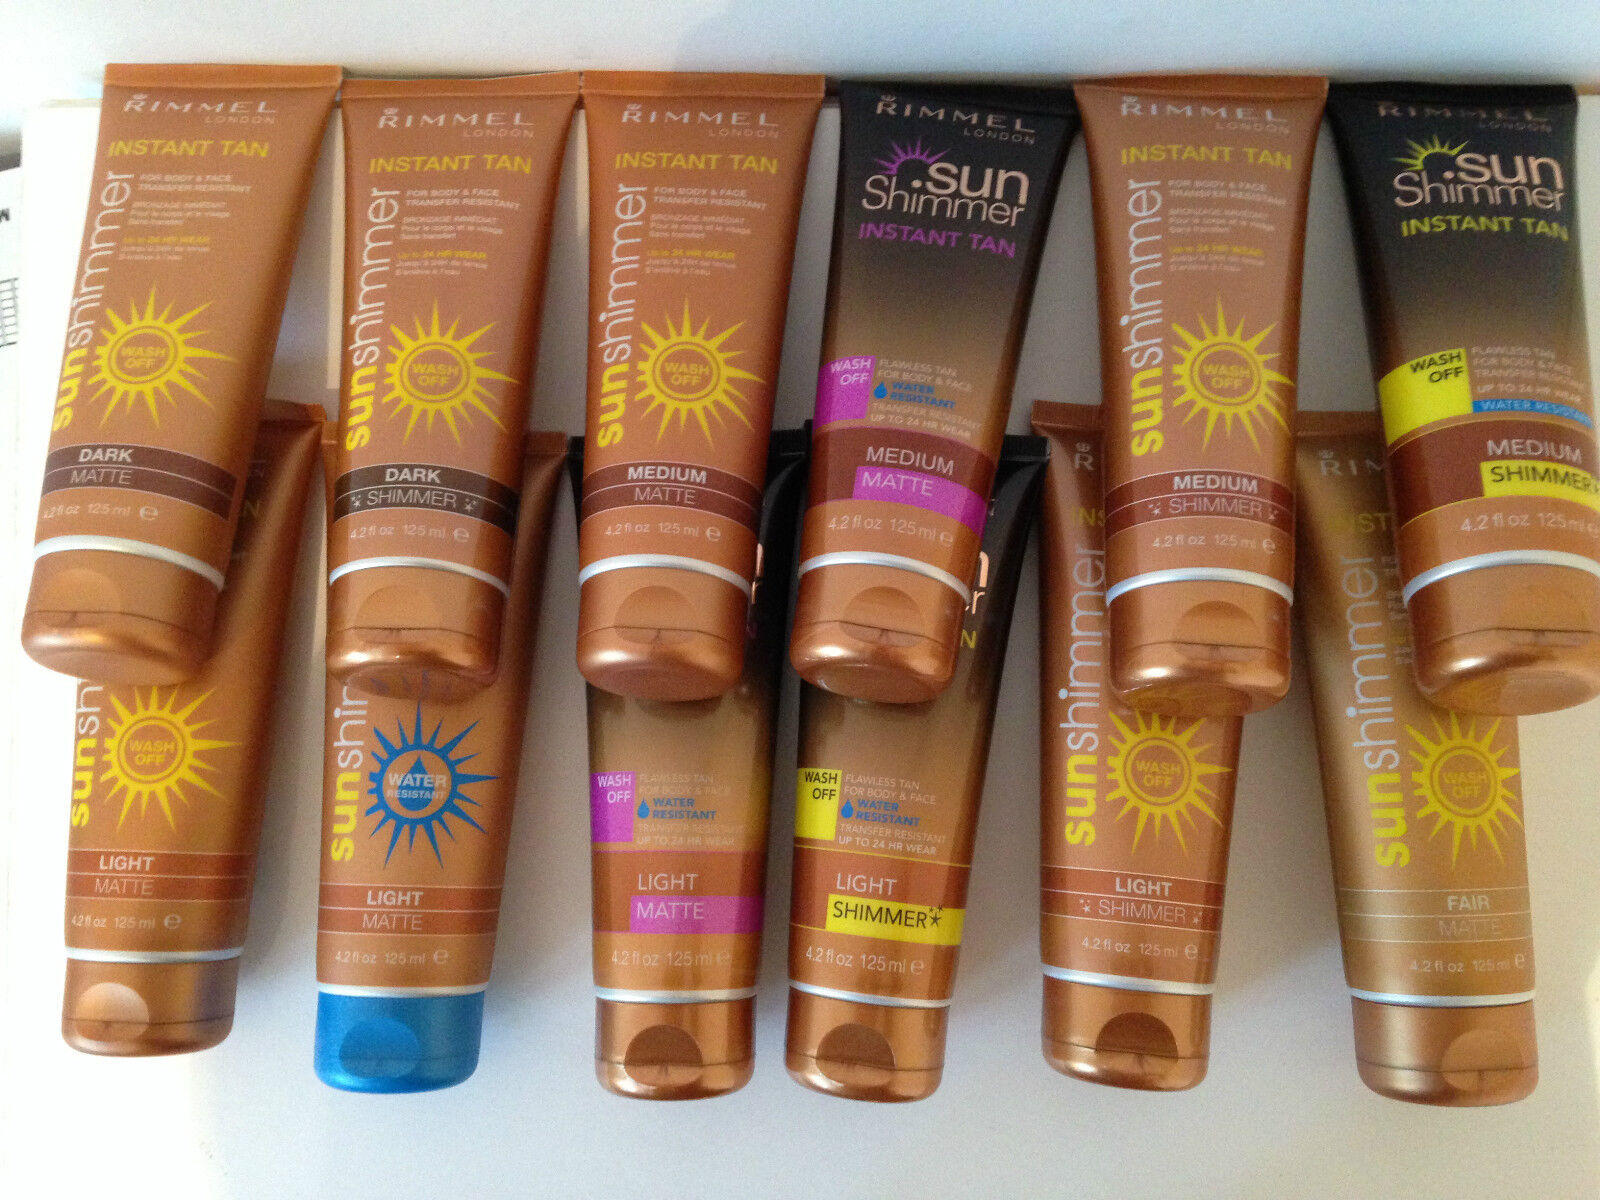 Rimmel Sun Shimmer Instant Tan 125ml Choose From Original or New